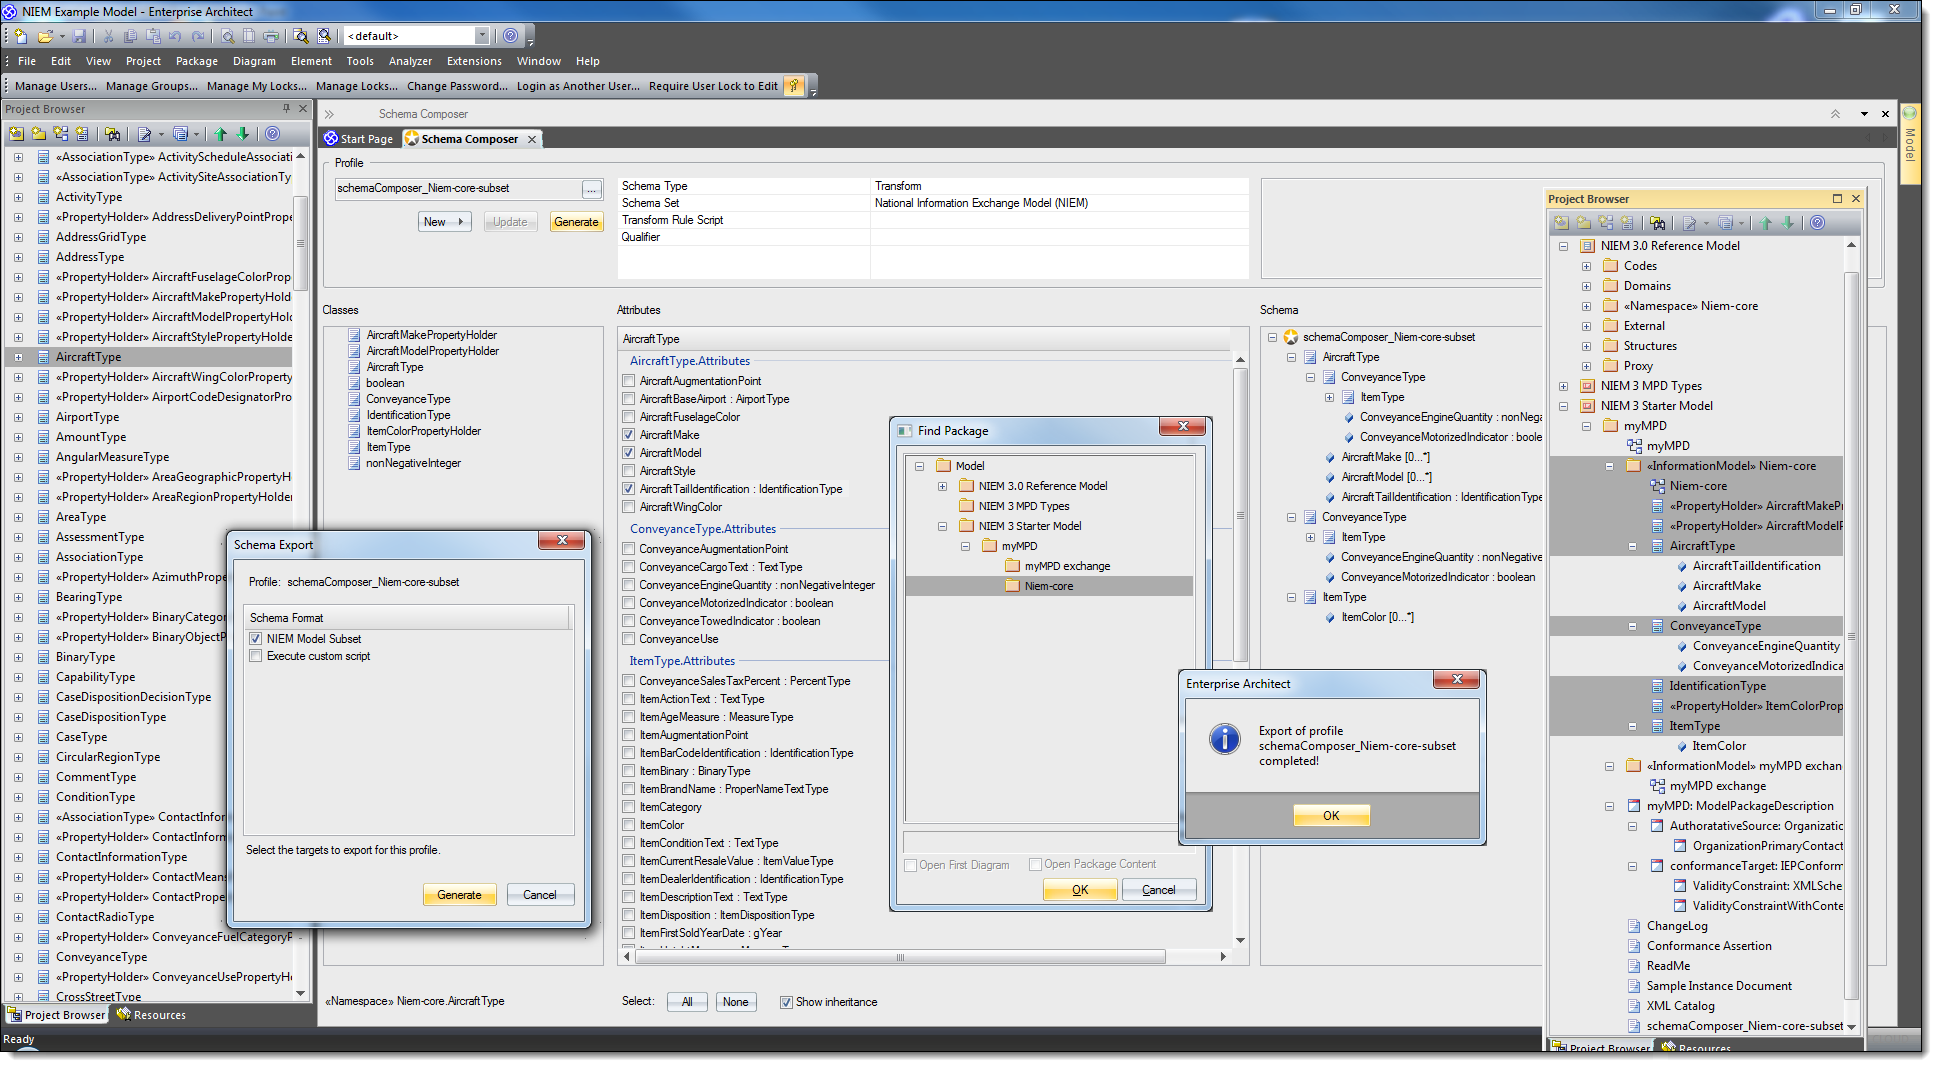 NIEM 3.1 Transform within Schema Composer